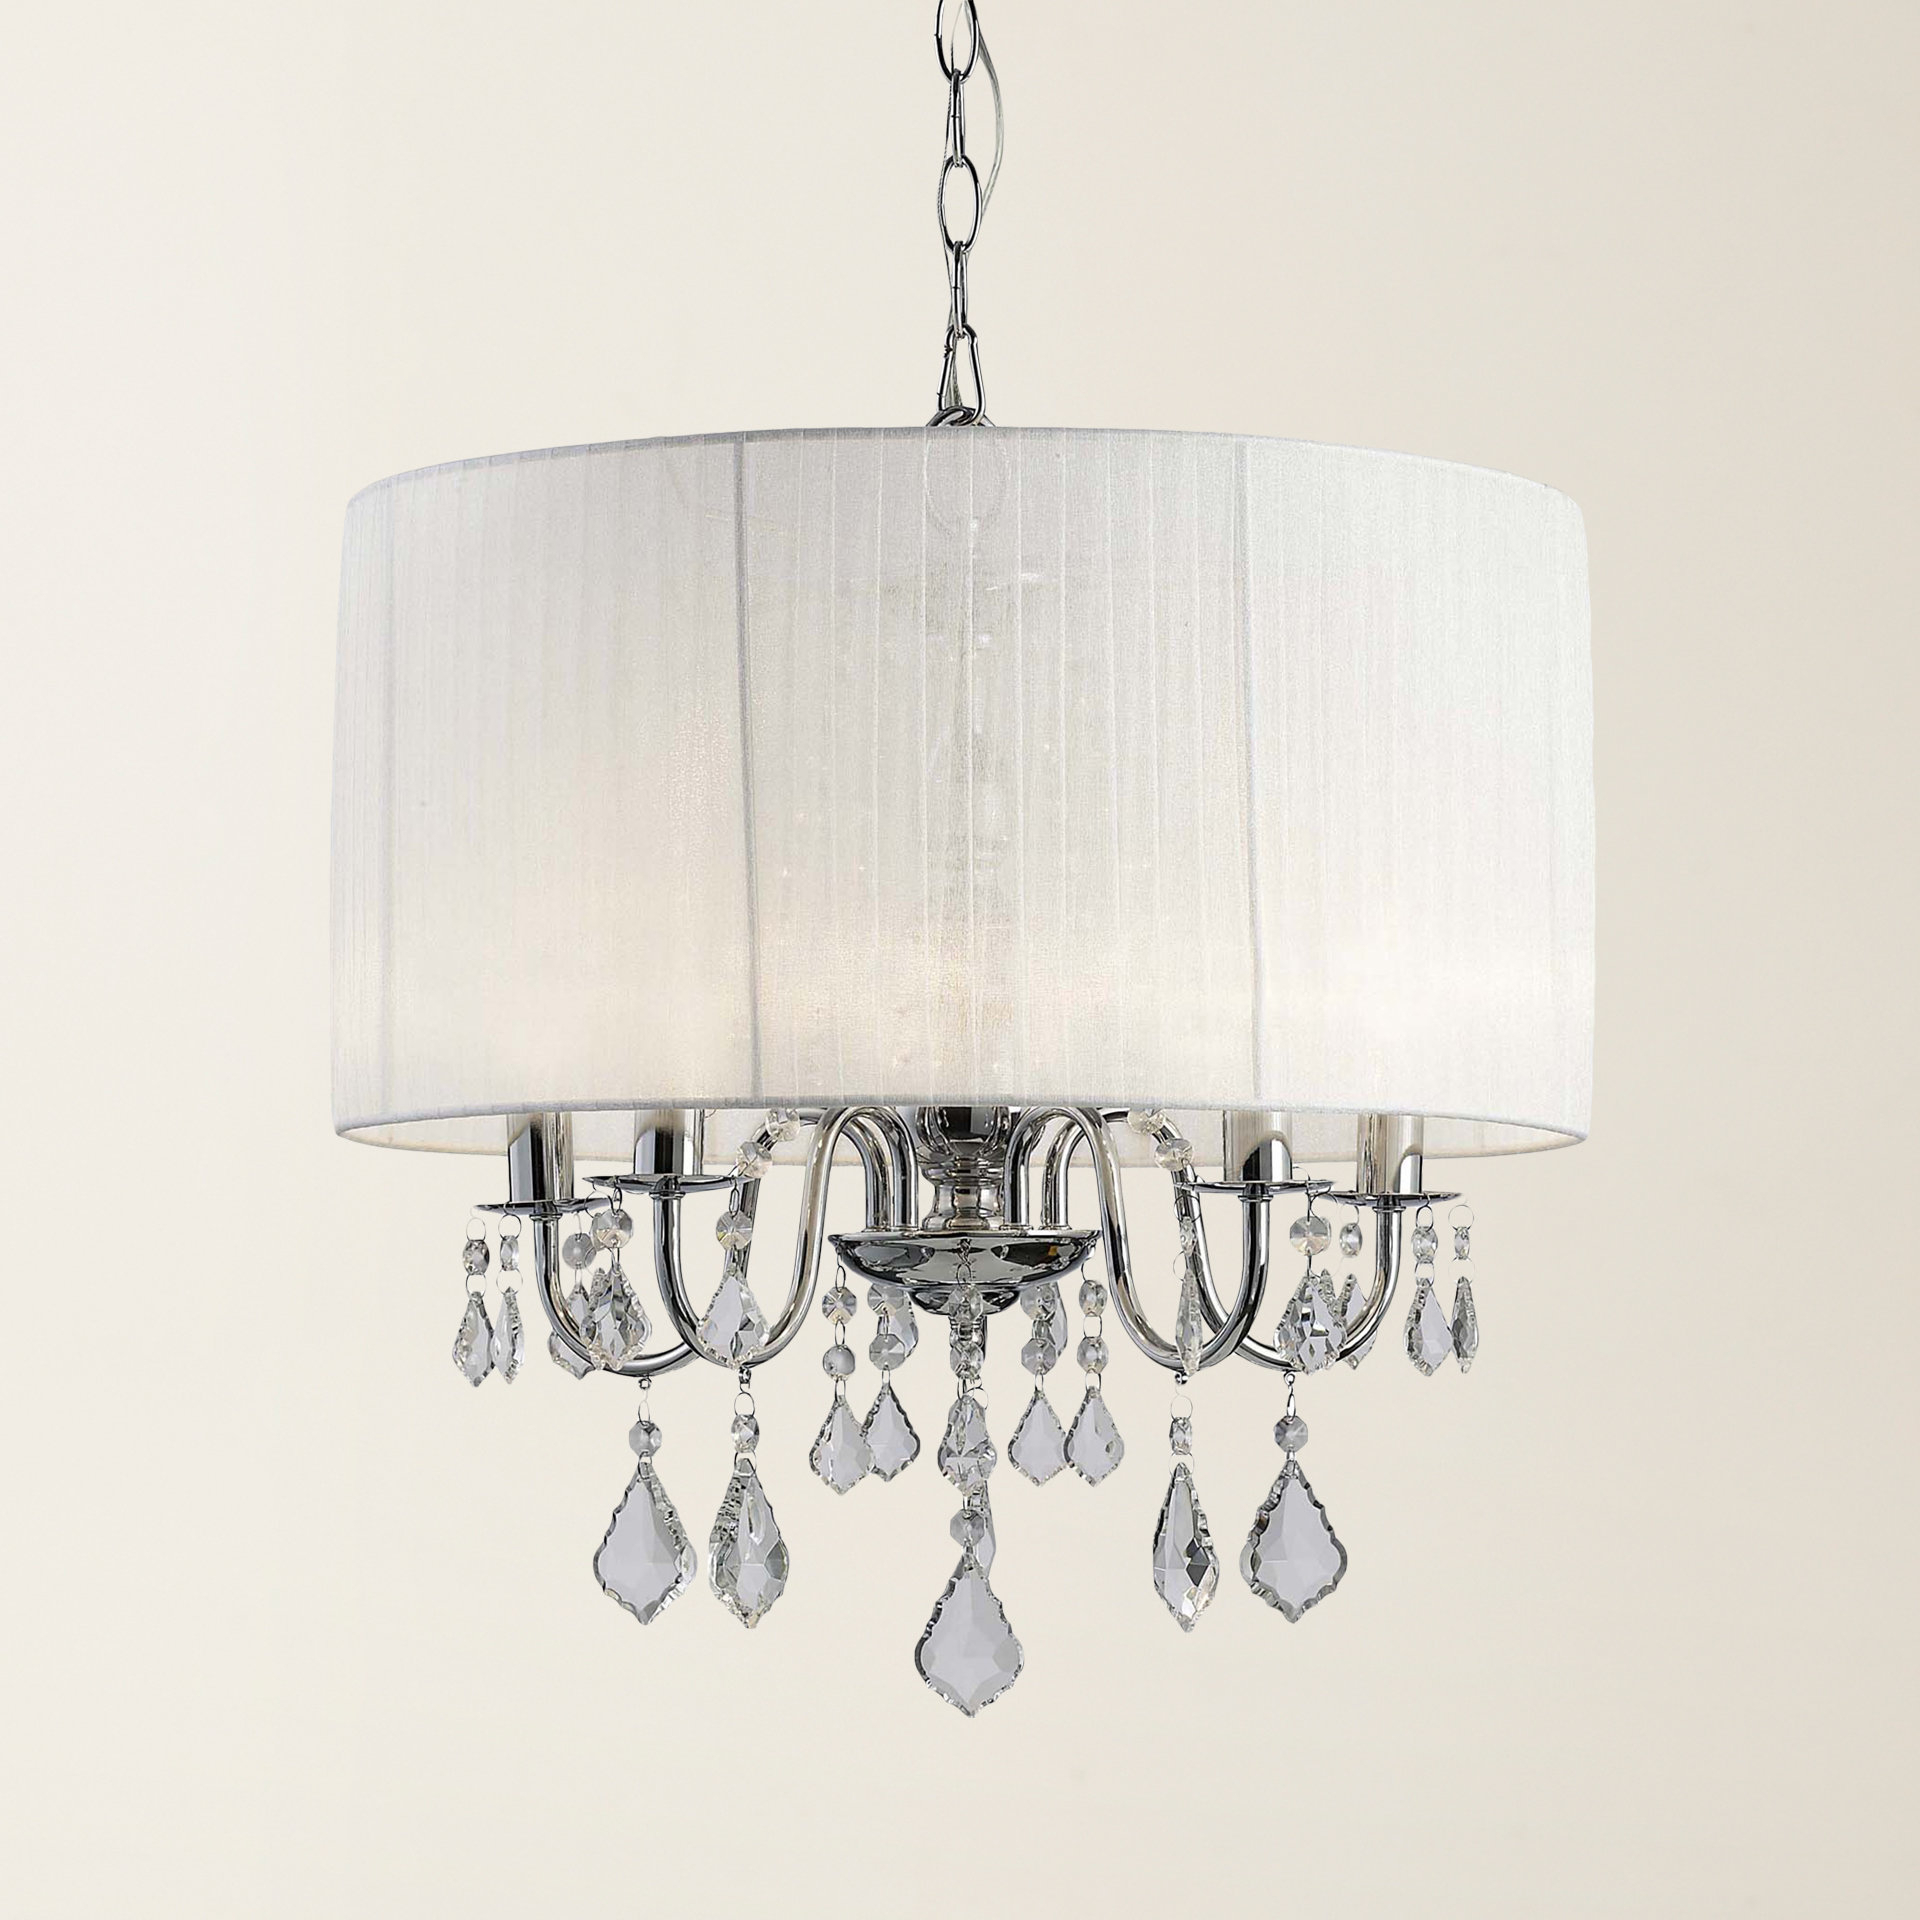 Lindsey 4 Light Drum Chandeliers Within Fashionable Buster 5 Light Drum Chandelier (Gallery 5 of 20)